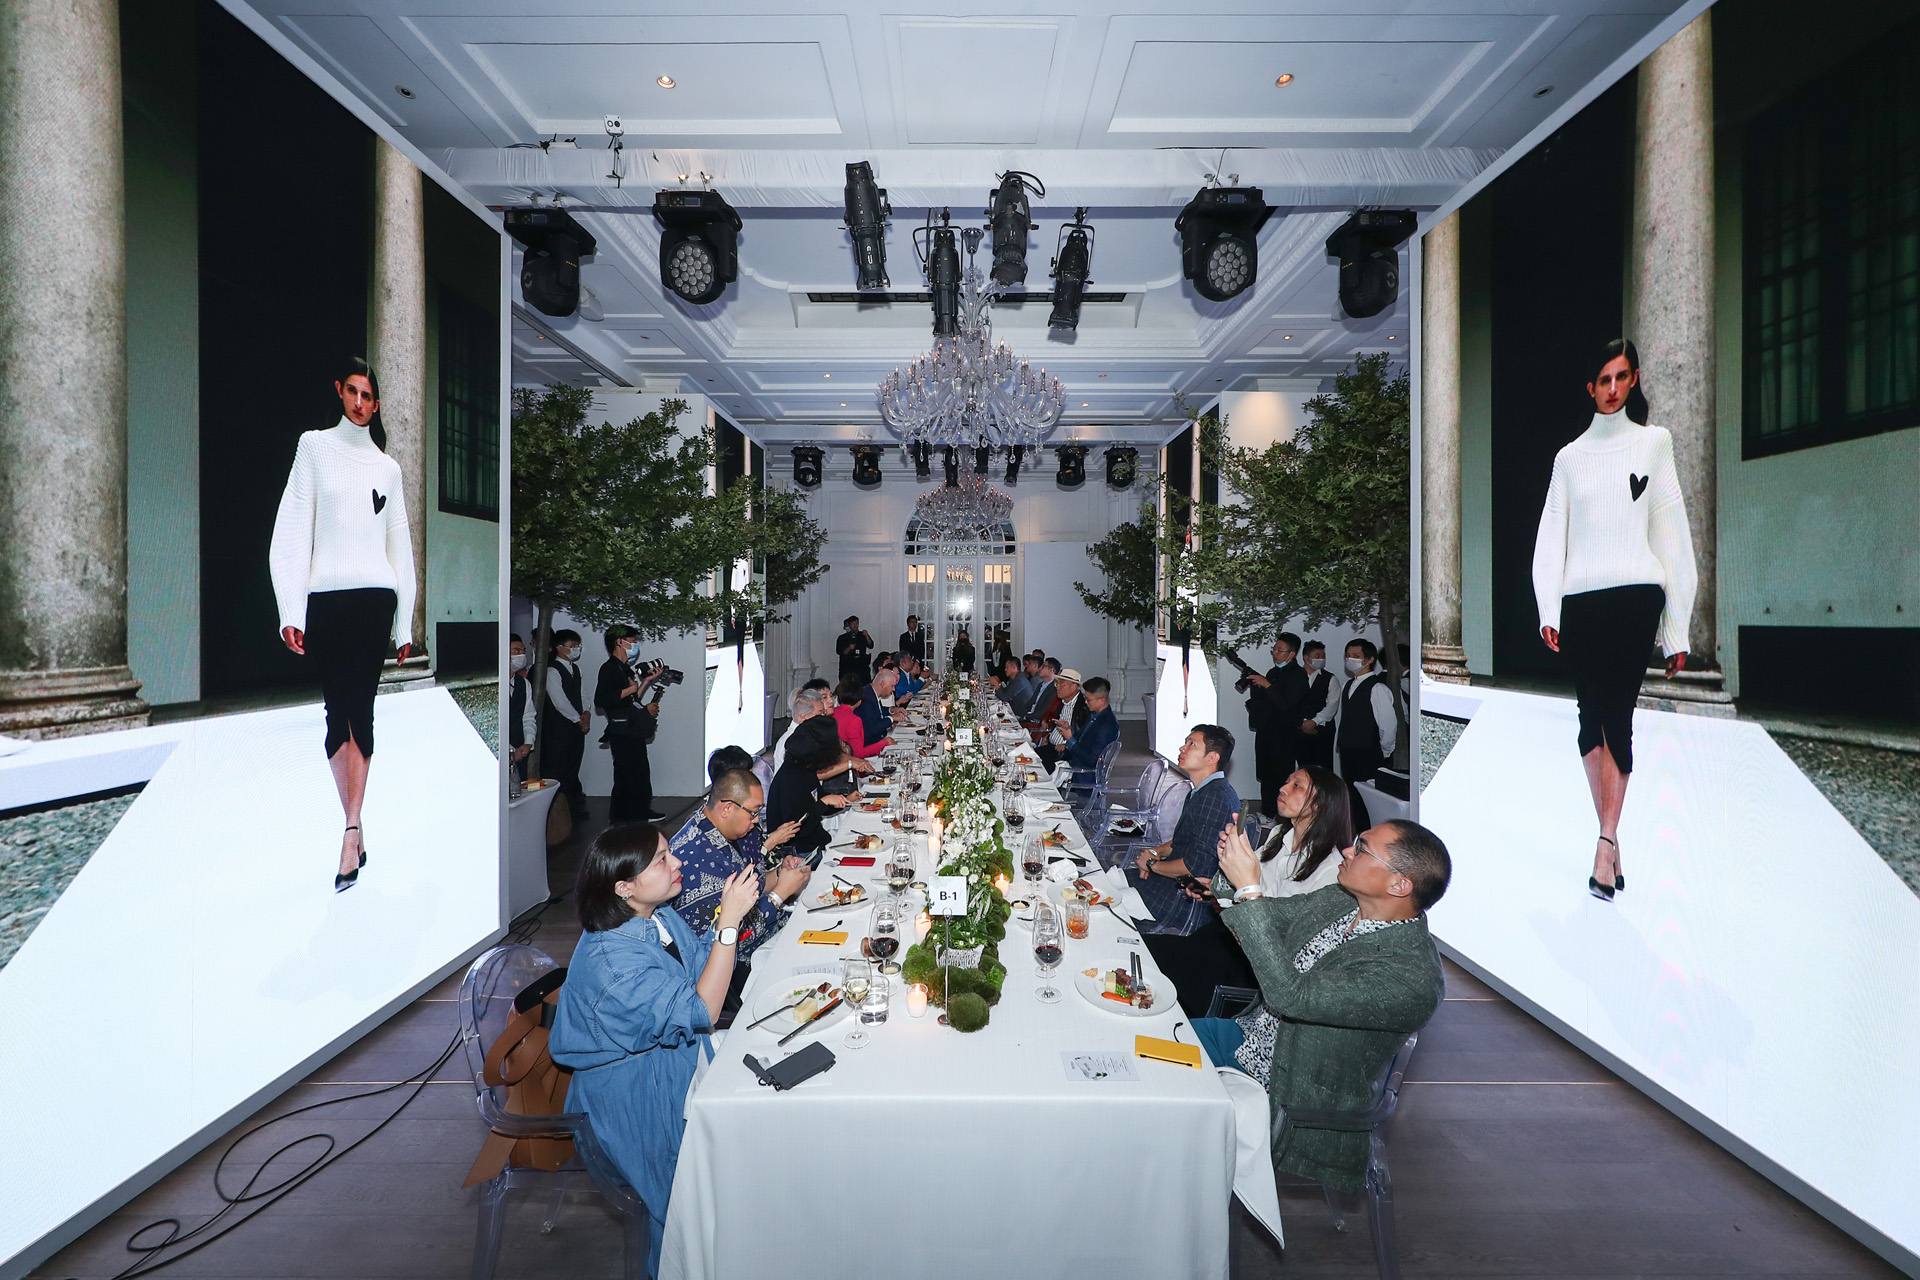 Hugo Boss gala dinner in Shanghai, where guests can watch the live streaming while the dinner proceed.